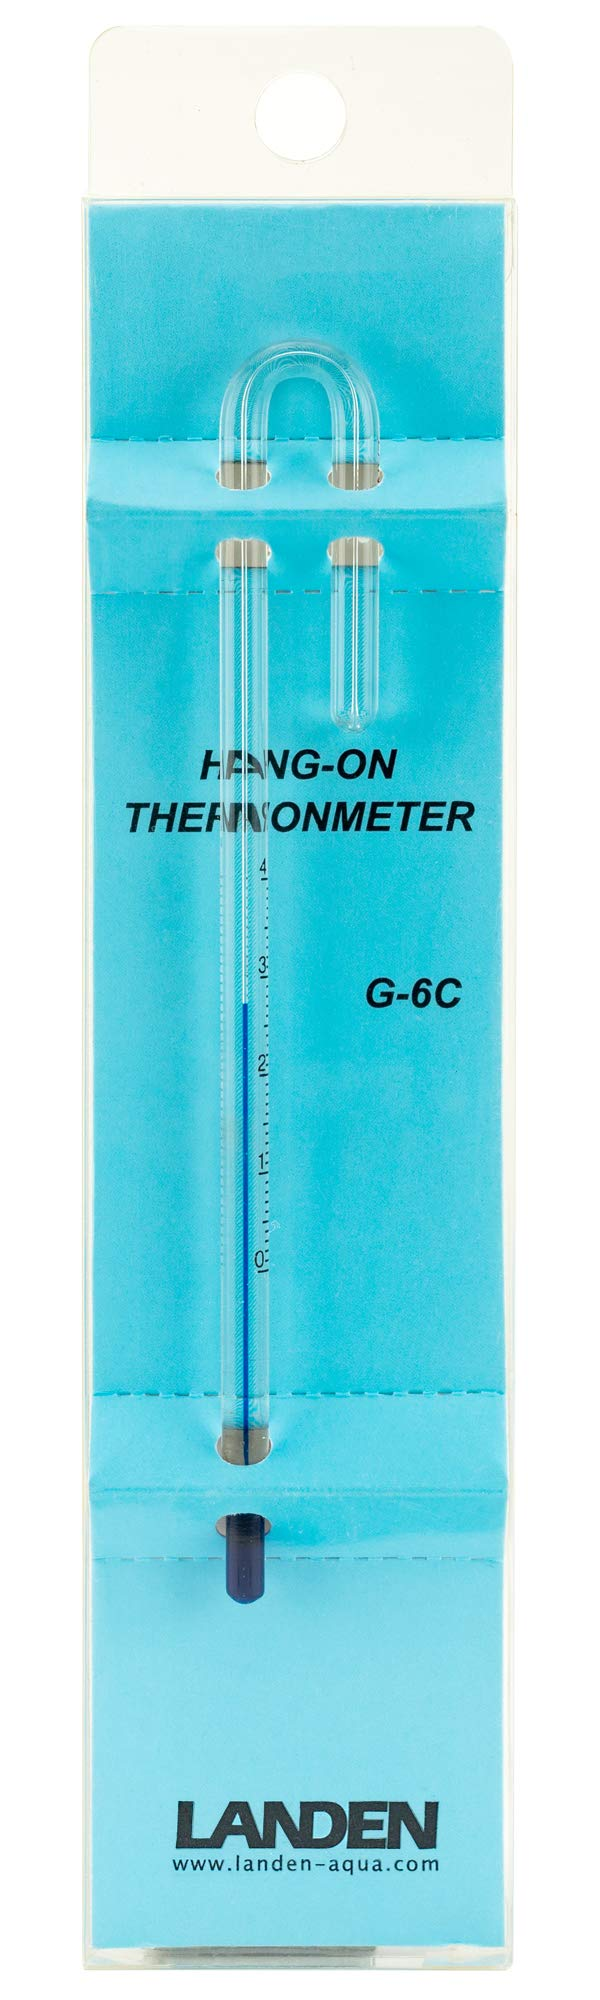 Landen Hang On Thermometer, Clear, 6mm (G-6C) by Landen